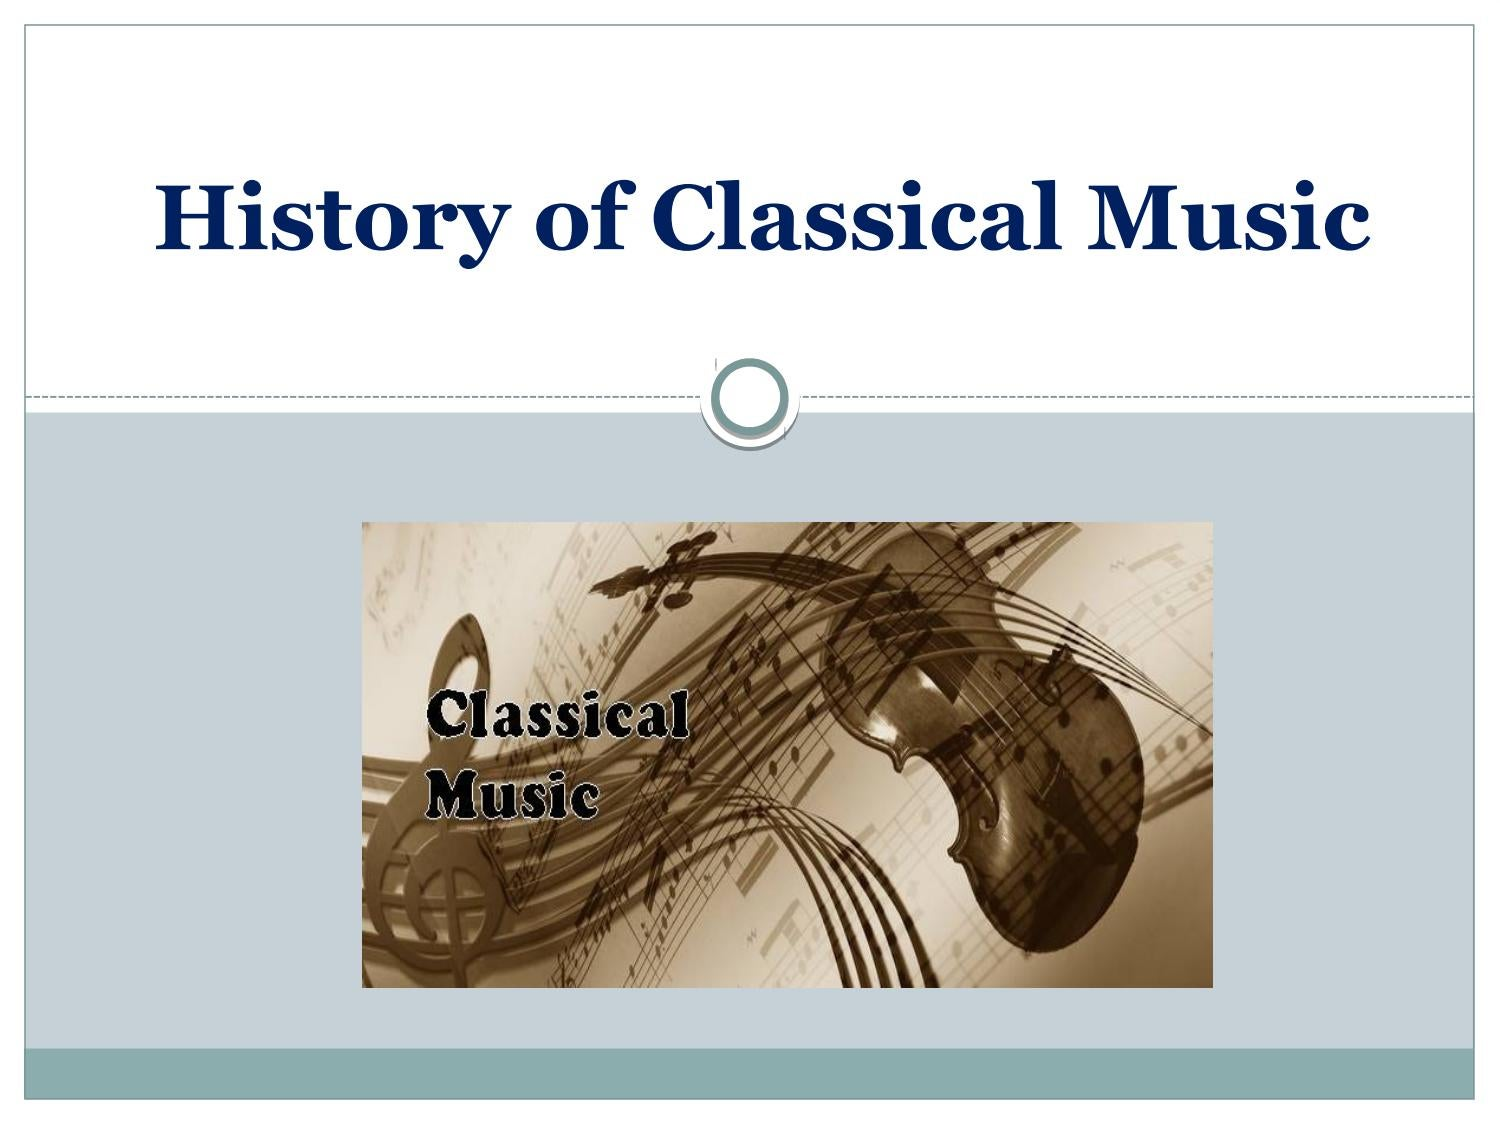 benefits of classical music essay Classical music and popular music are both part of the culture of most americans and europeans they share some aspects of musical language, but there are some prominent differences hi we can edit and customize this paper for you just send your request for getting no plagiarism essay.